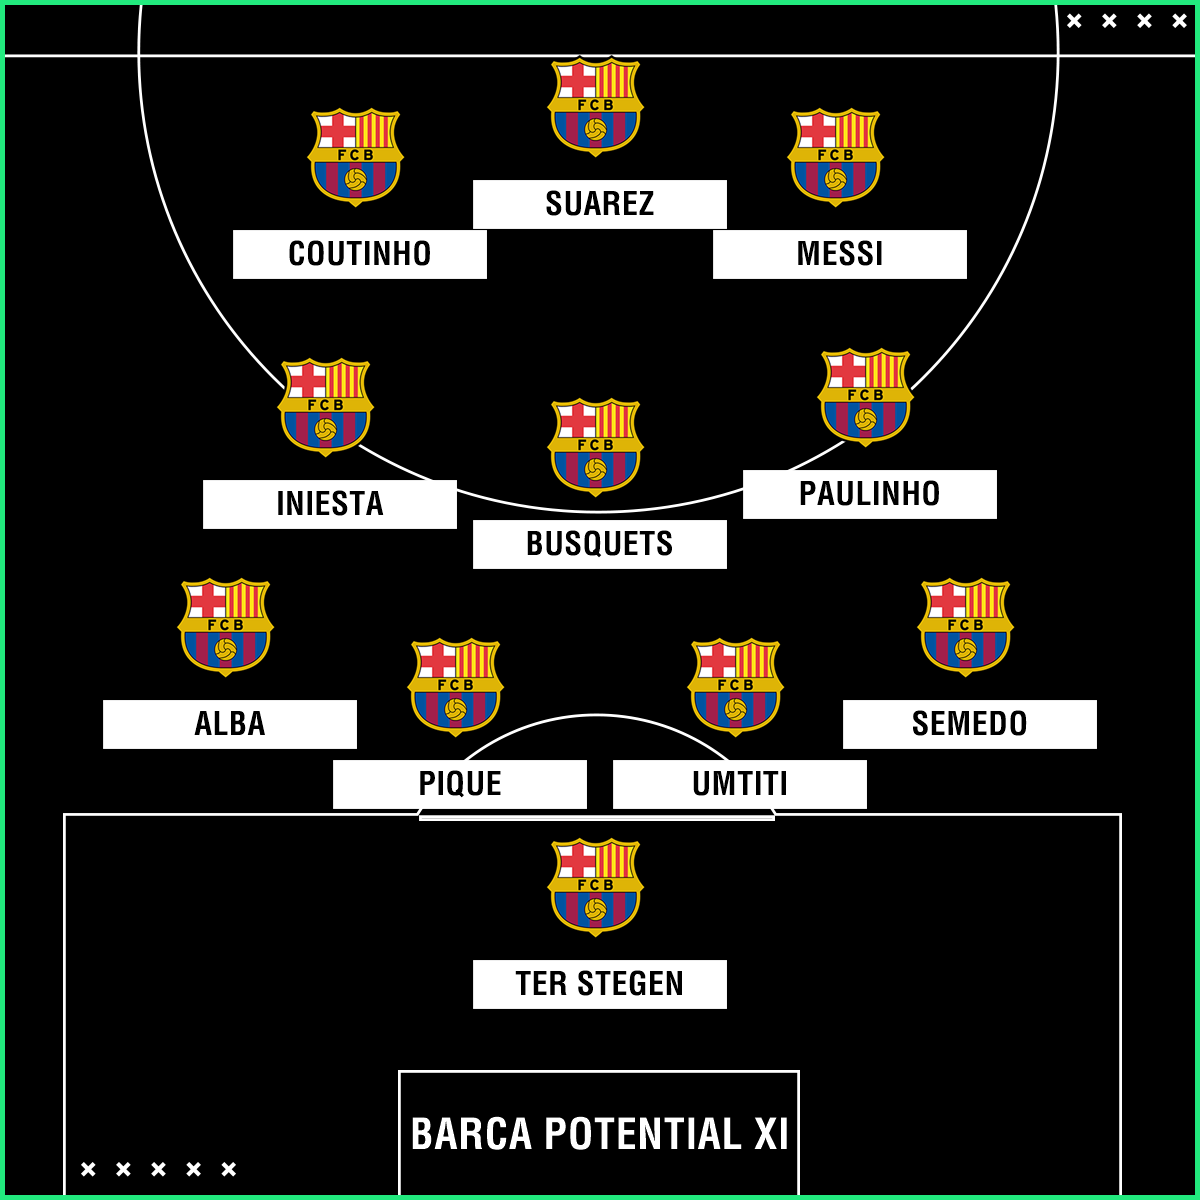 Tottenham Team News Injuries Suspensions And Line Up Vs: Barcelona Team News: Injuries, Suspensions And Line-up Vs